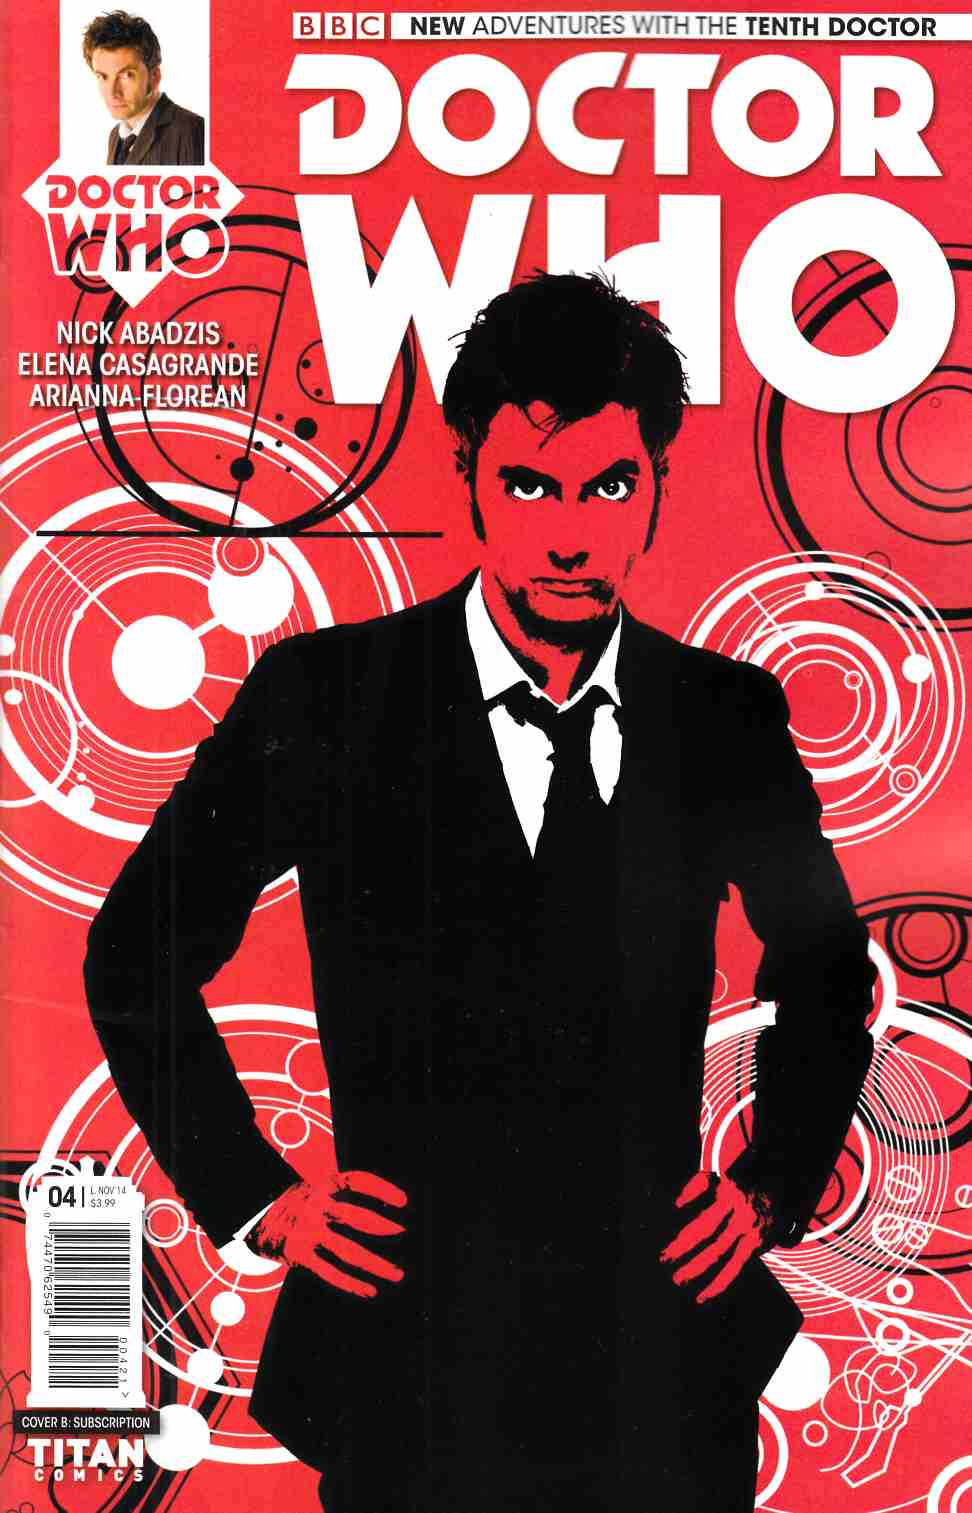 Doctor Who 10th Doctor #4 Subscription Photo Cover [Titan Comic] THUMBNAIL